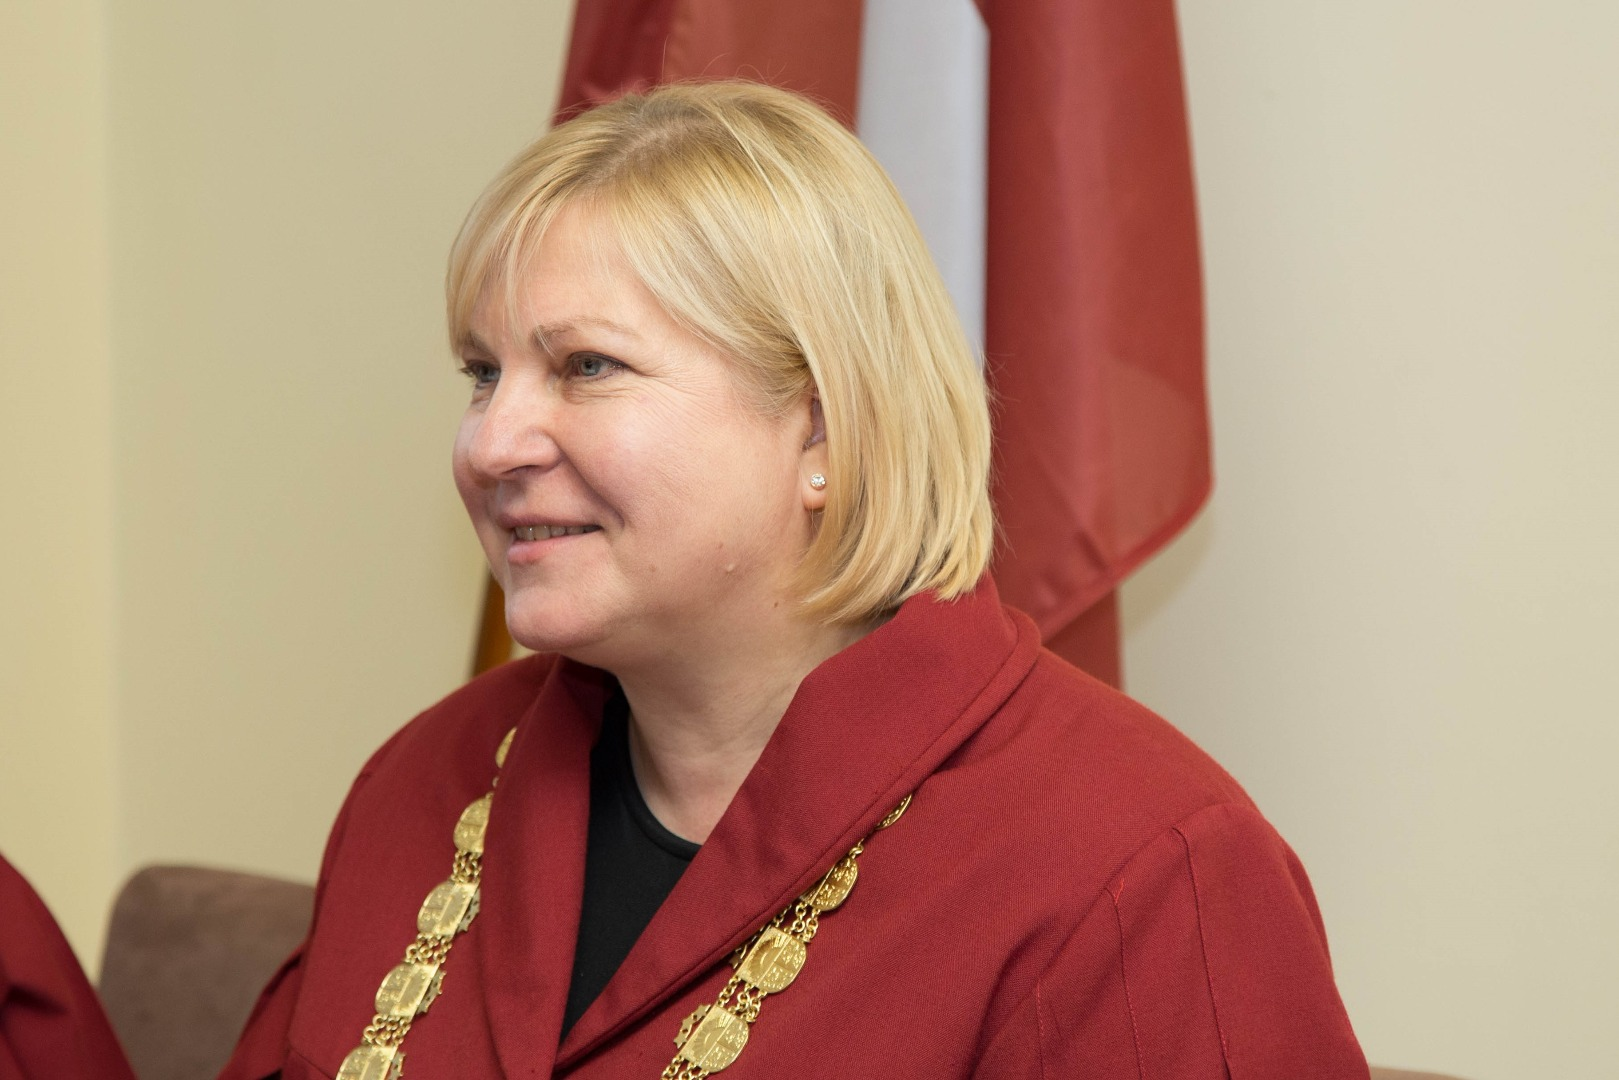 14.12.2017. Veronika Krumina is re-elected as the Chair of the Department of Administrative Cases